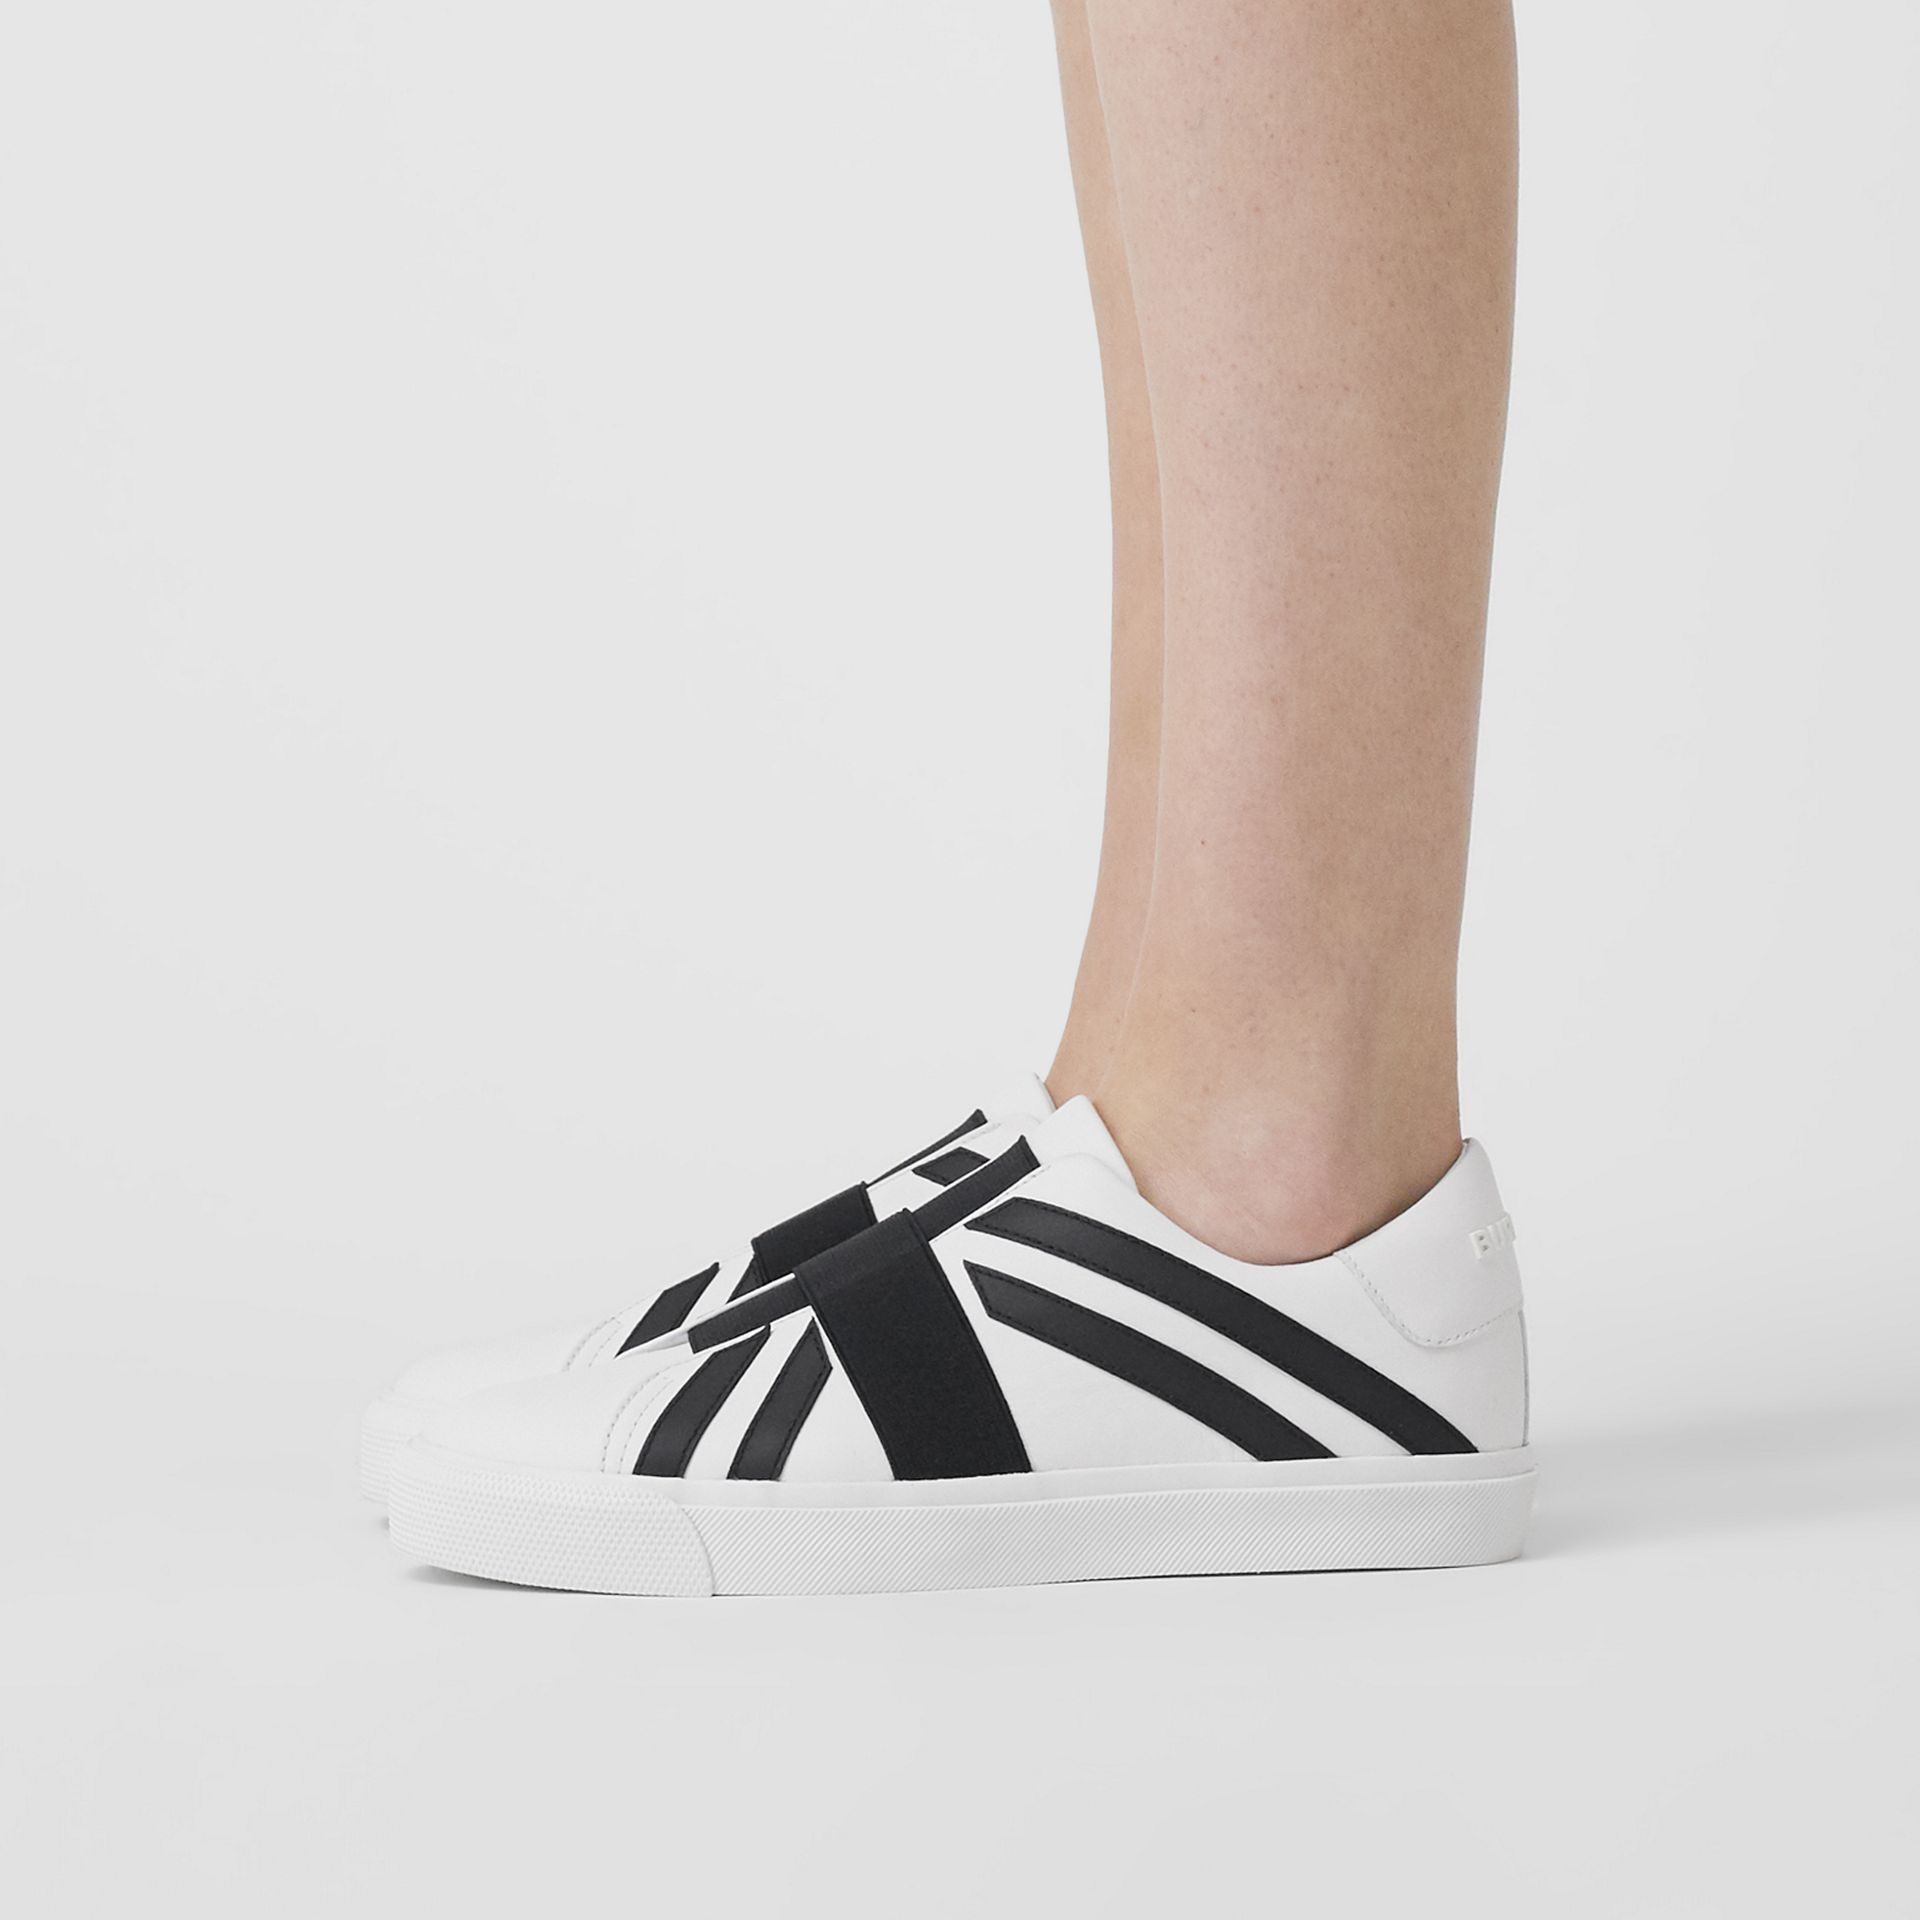 Union Jack Motif Slip-on Sneakers in Optic White/black - Women | Burberry - gallery image 2